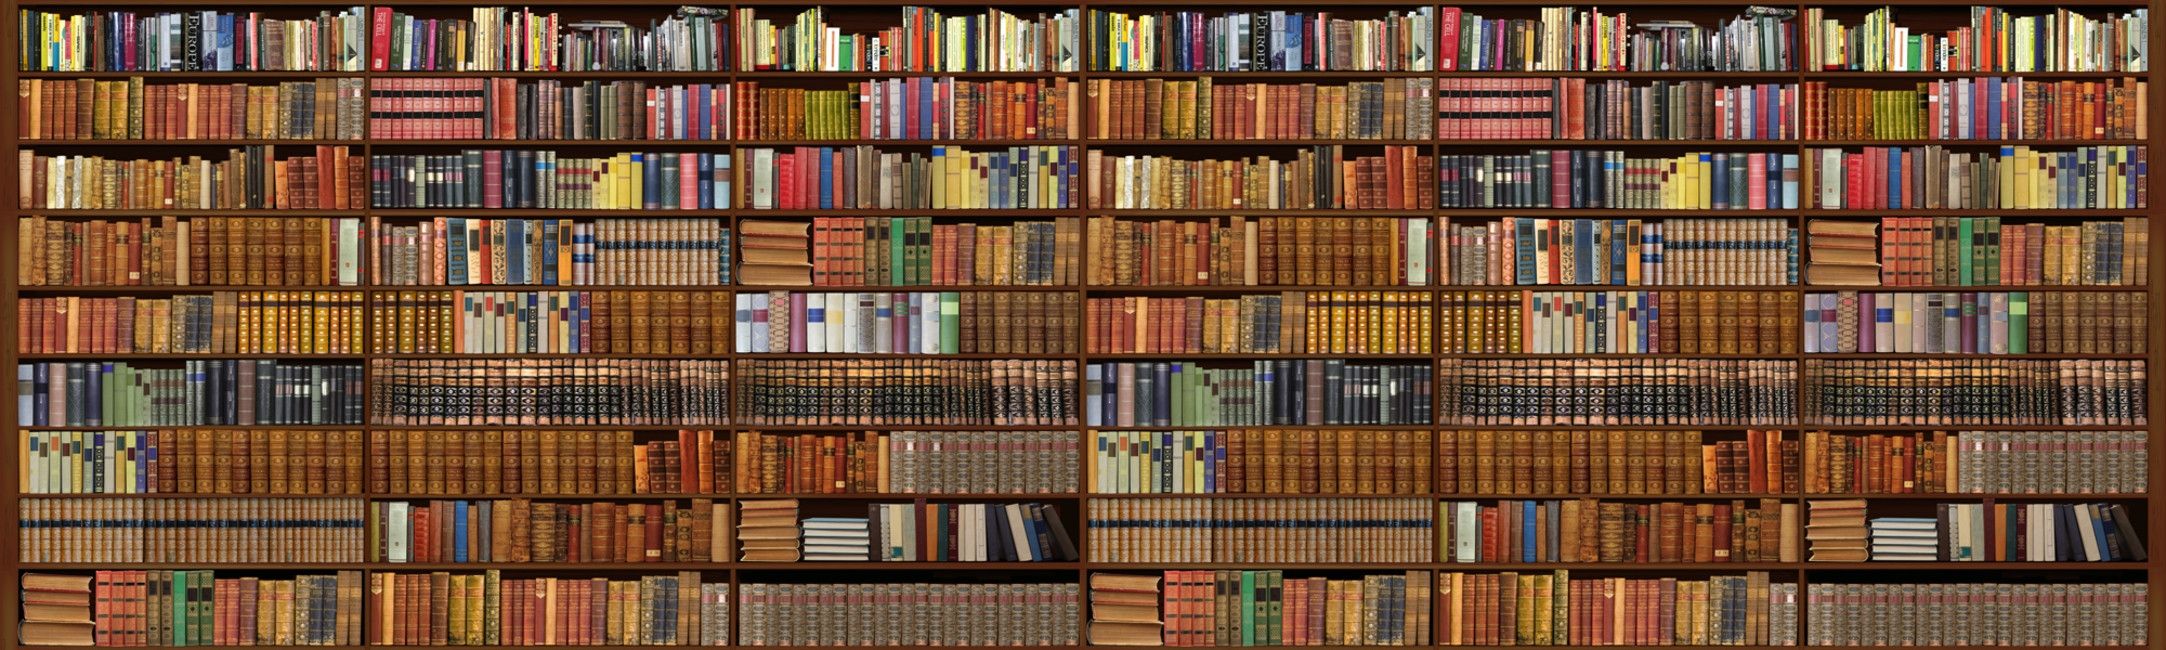 Hyw41 Bookshelf Hd Images 43 Free Large Images With Regard To Bookshelf (#13 of 15)